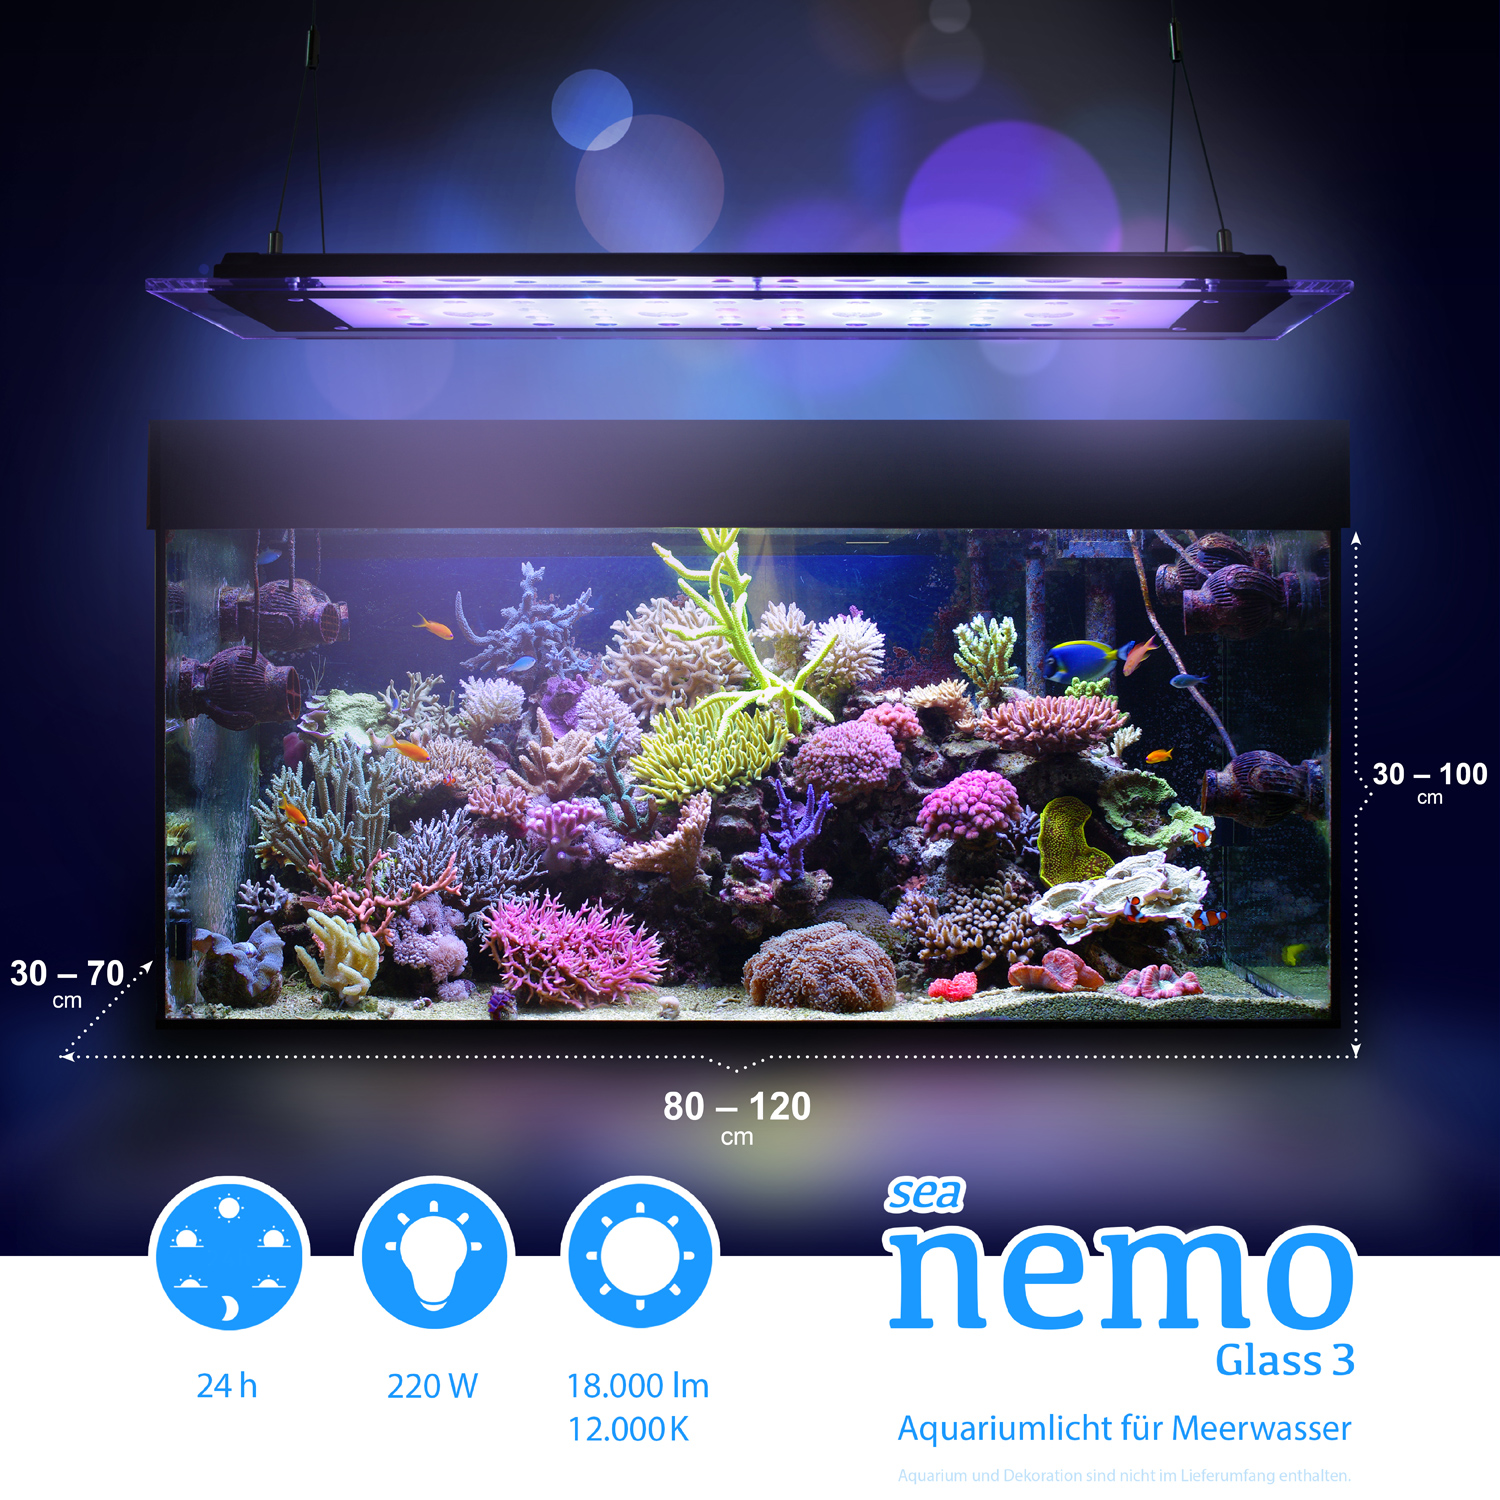 sea nemo glass 3 led korallen meerwasser aquarium. Black Bedroom Furniture Sets. Home Design Ideas